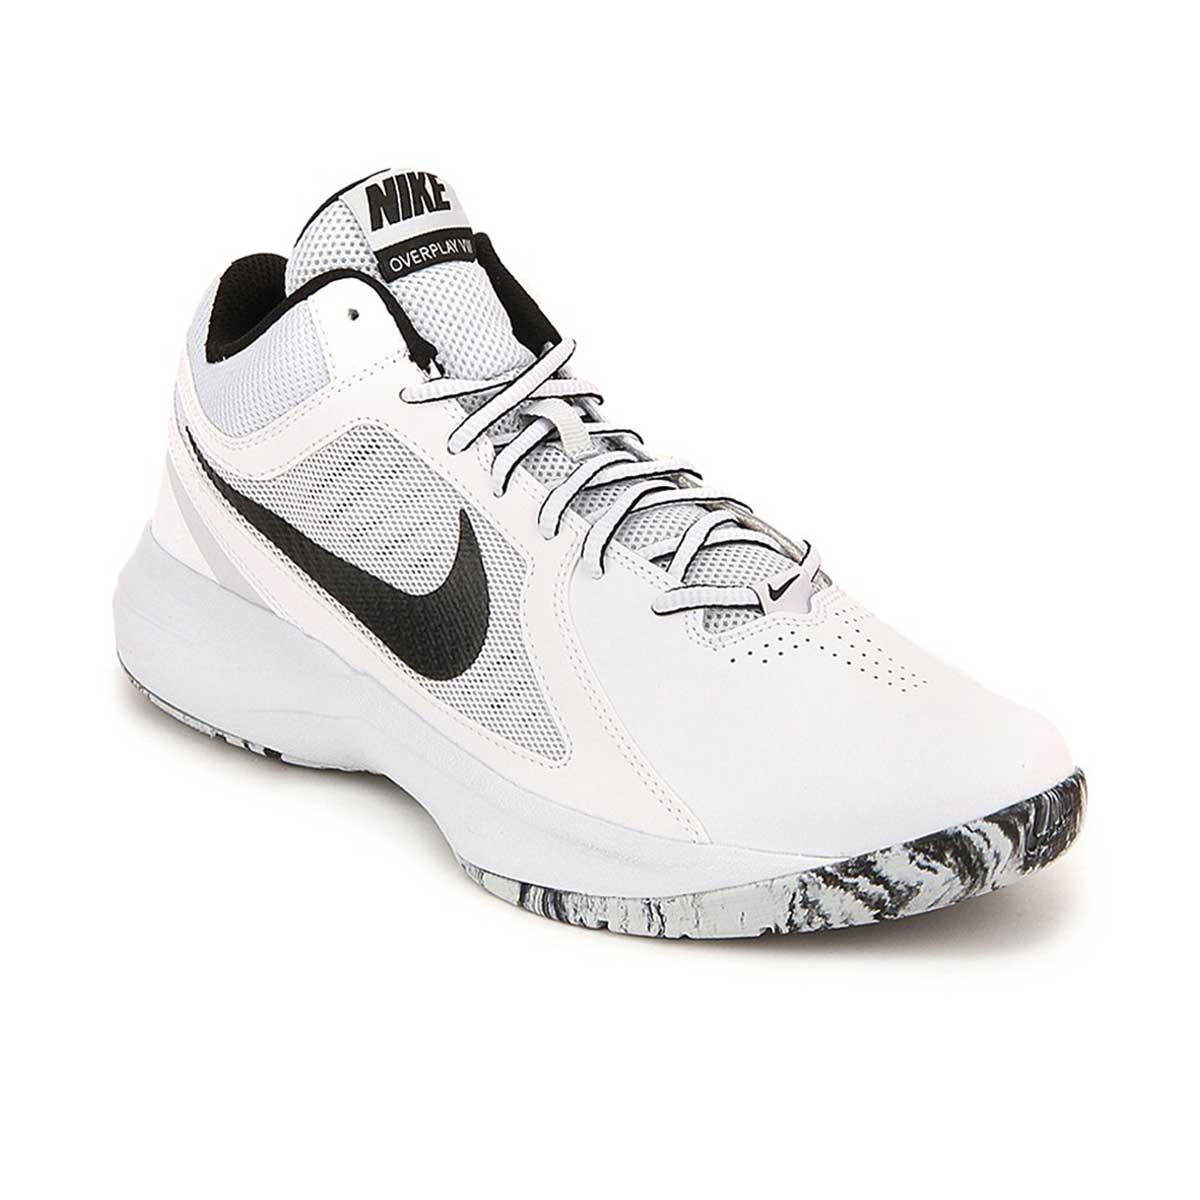 Nike Viii Viii Overplay Basketball Basketball Shoes Nike Nike Overplay Basketball Shoes Viii Overplay OTXiPkuZ